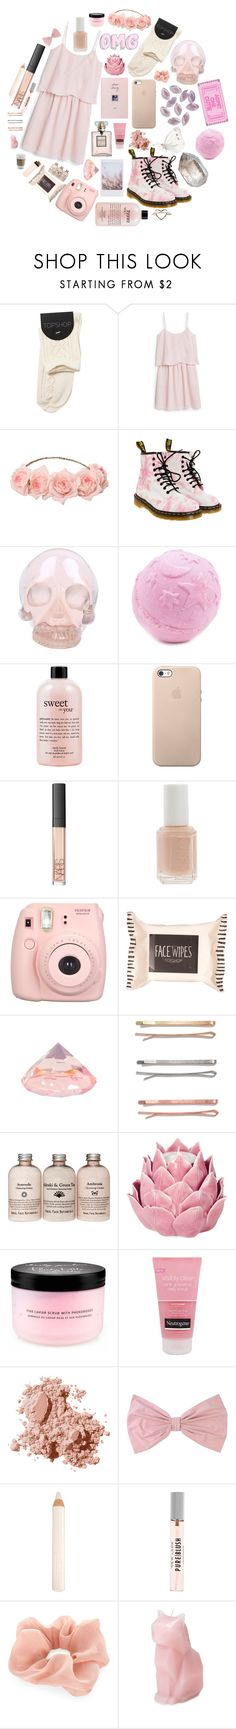 """pretty in pink"" by http-mxrmaid ❤ liked on Polyvore featuring MANGO, Dr. Martens, Horace, philosophy, NARS Cosmetics, Essie, Fujifilm, Topshop, Madewell and Zara Home"